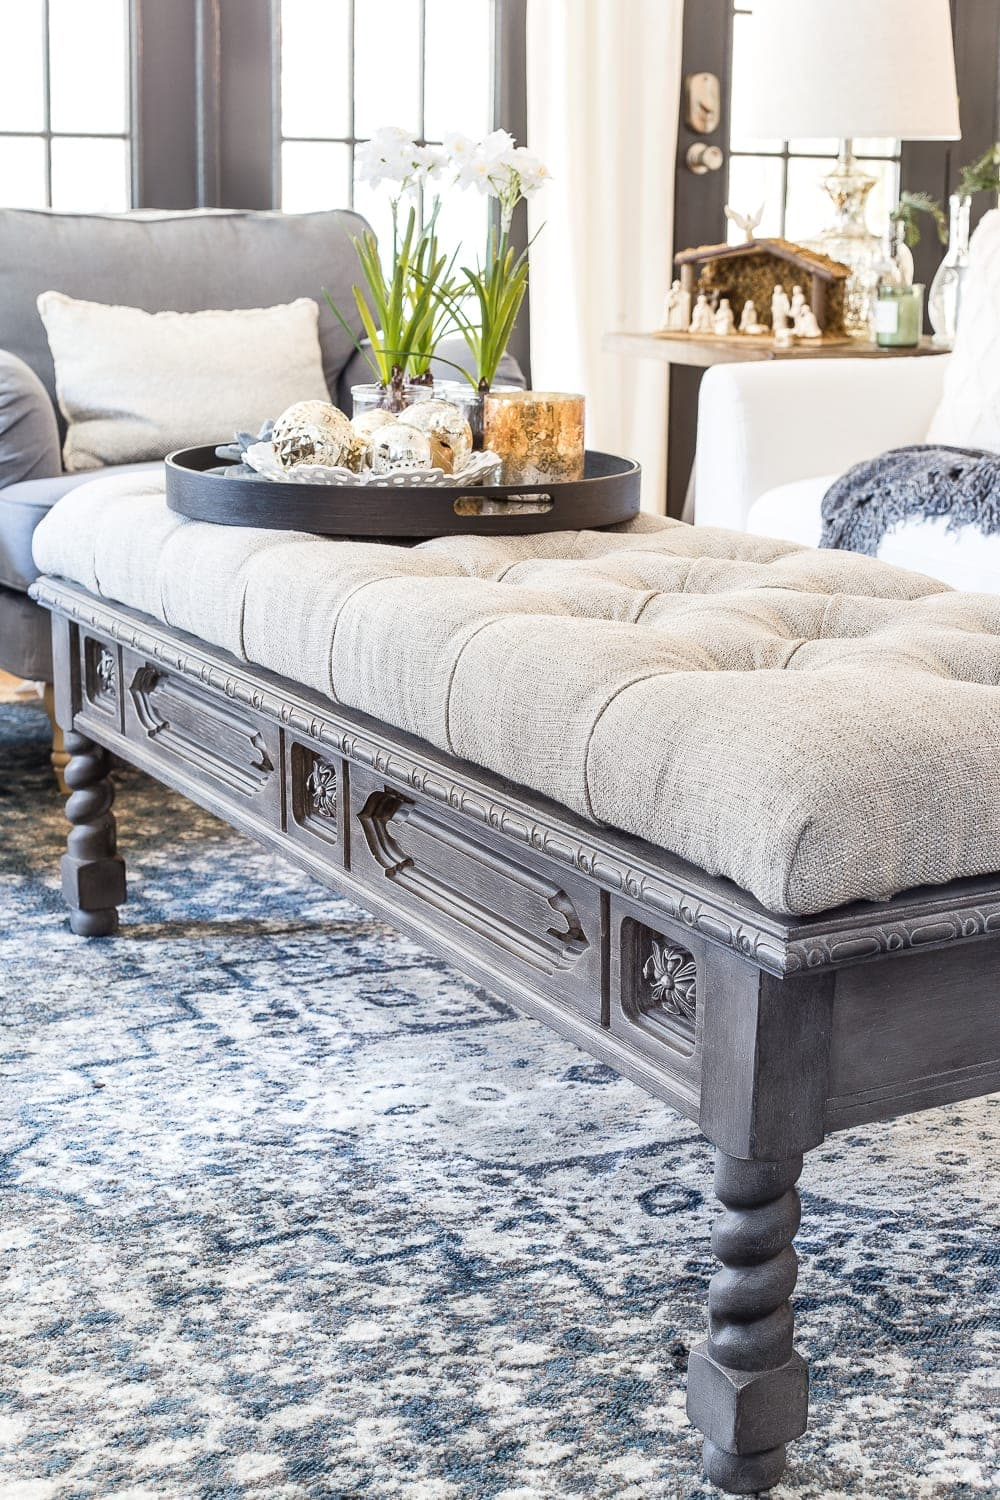 Ottoman Coffee Table New At Images of Concept